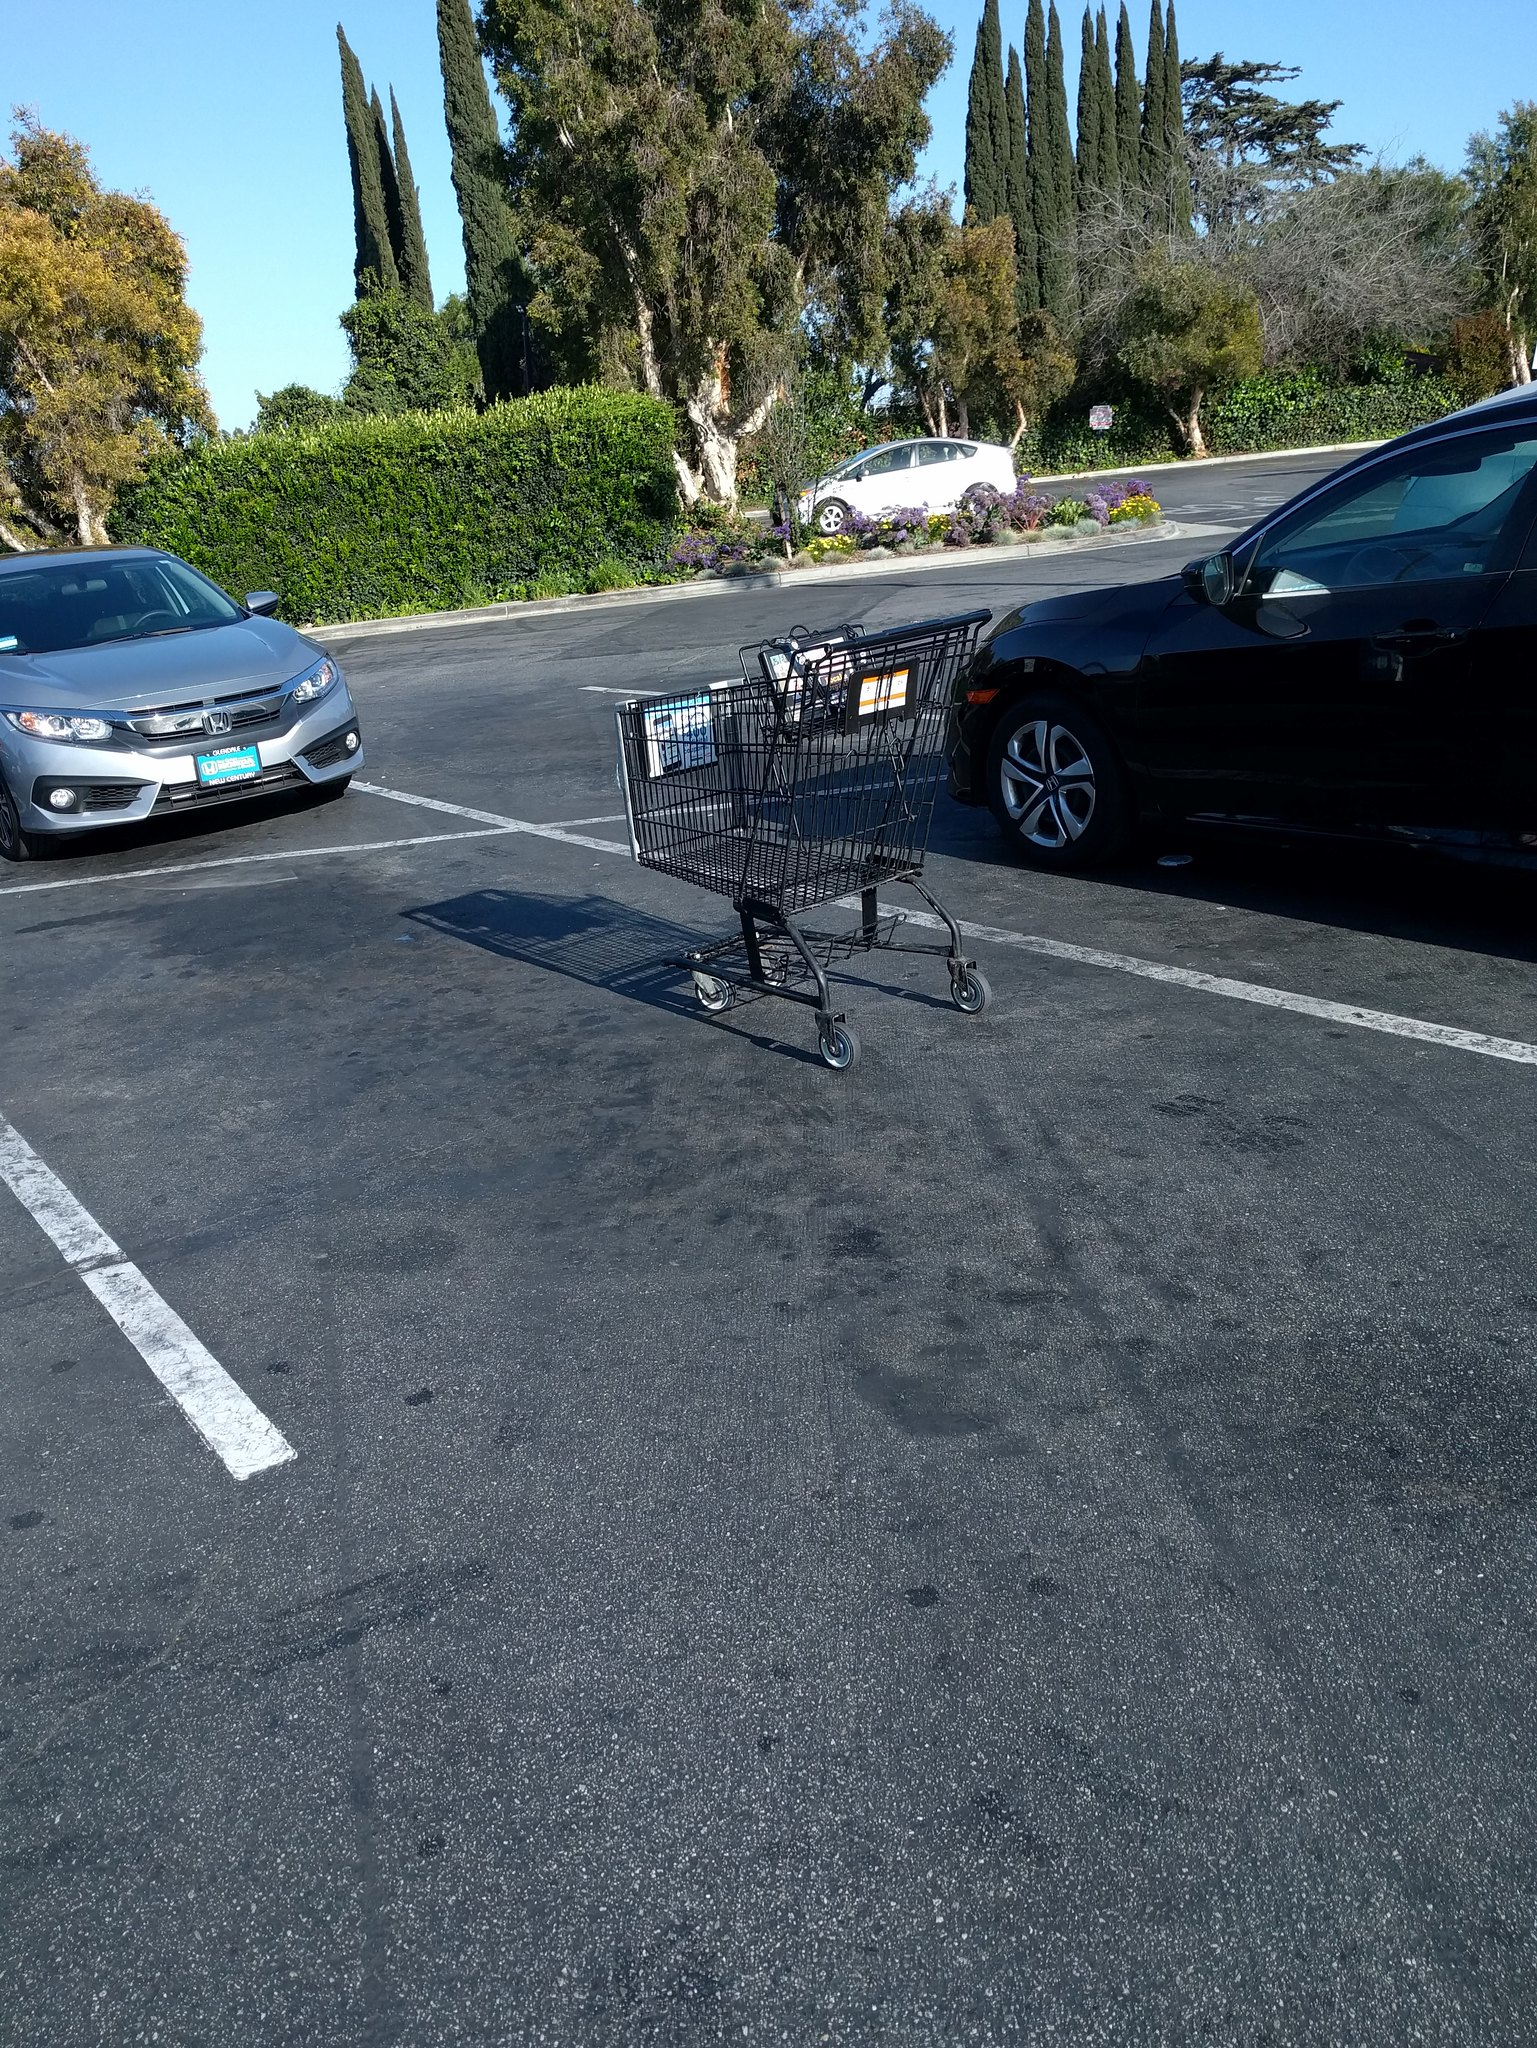 blocked parking space